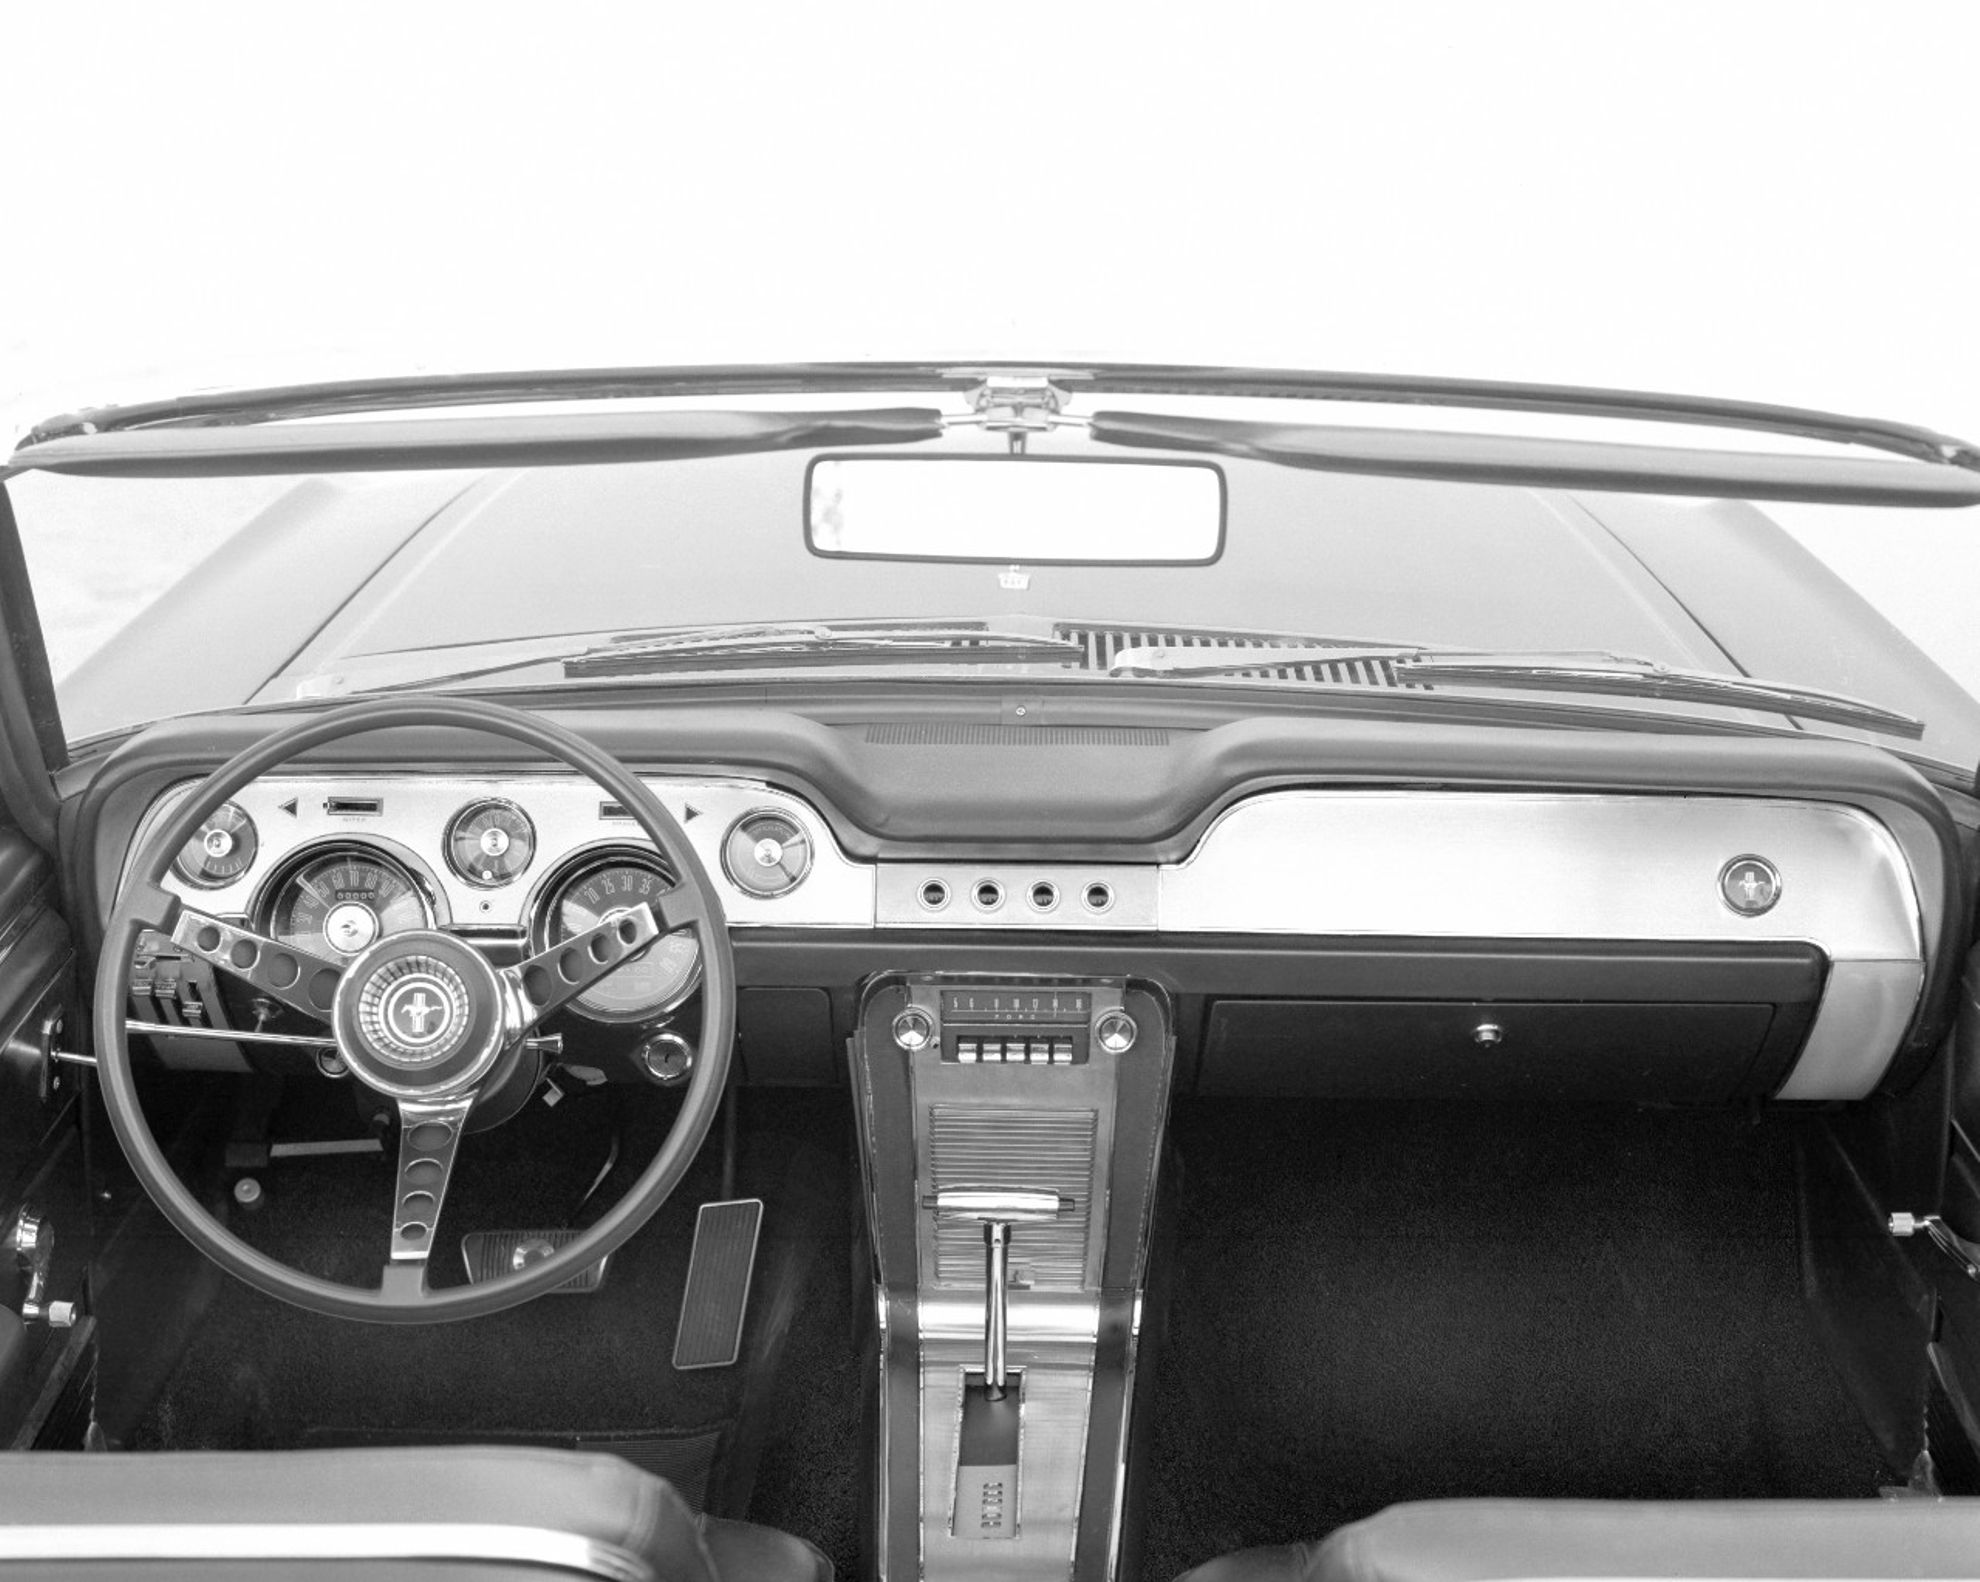 1967-Ford-Mustang-instrument-panel